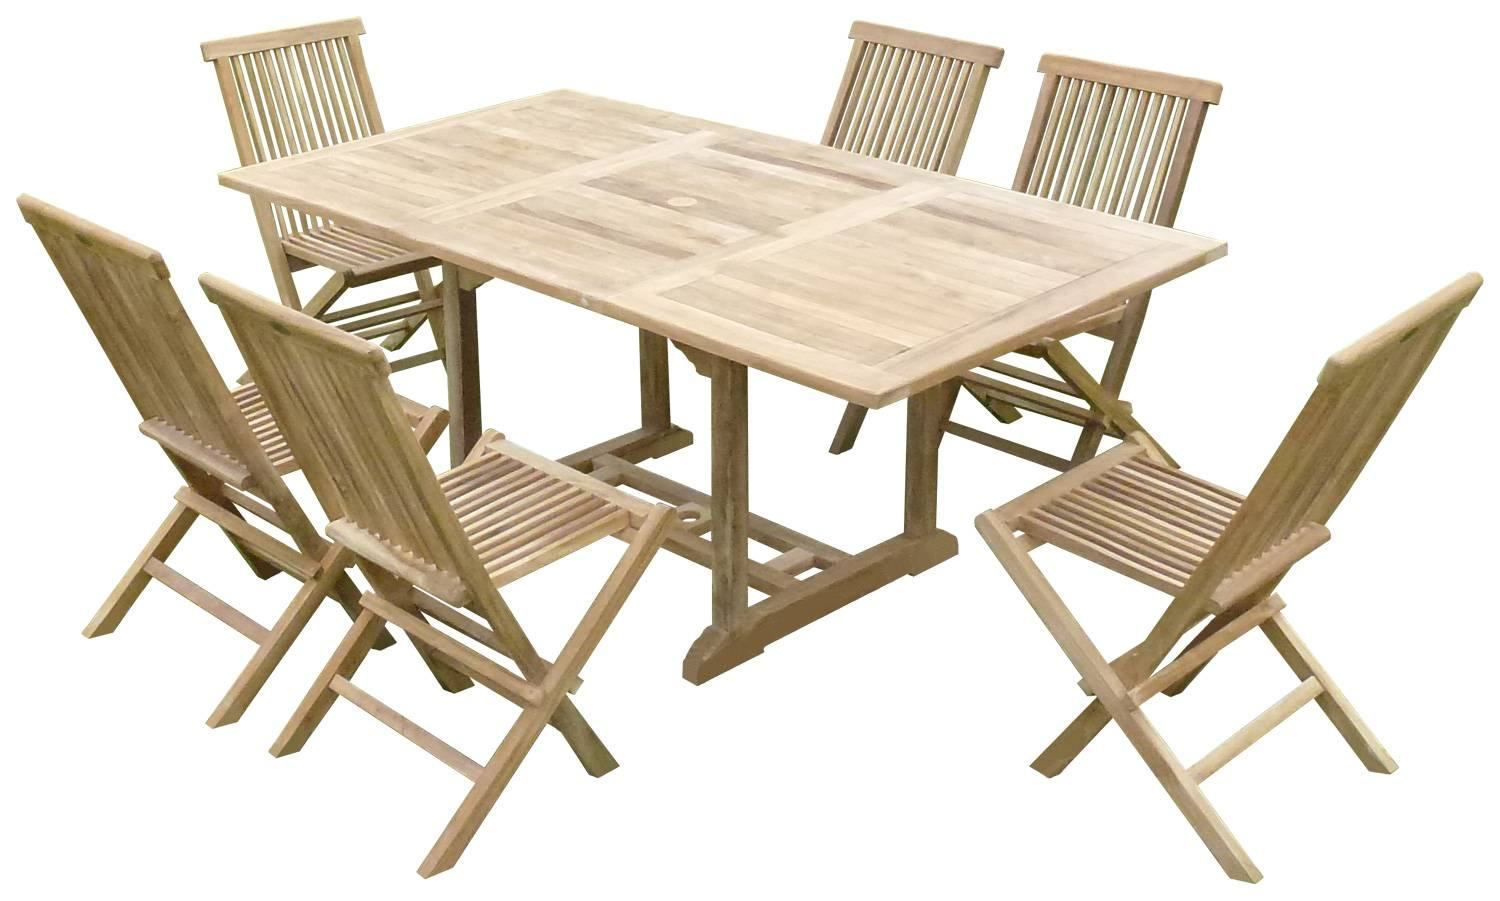 Emejing table de jardin pliante avec rallonge photos - Table pliante avec chaises integrees ...